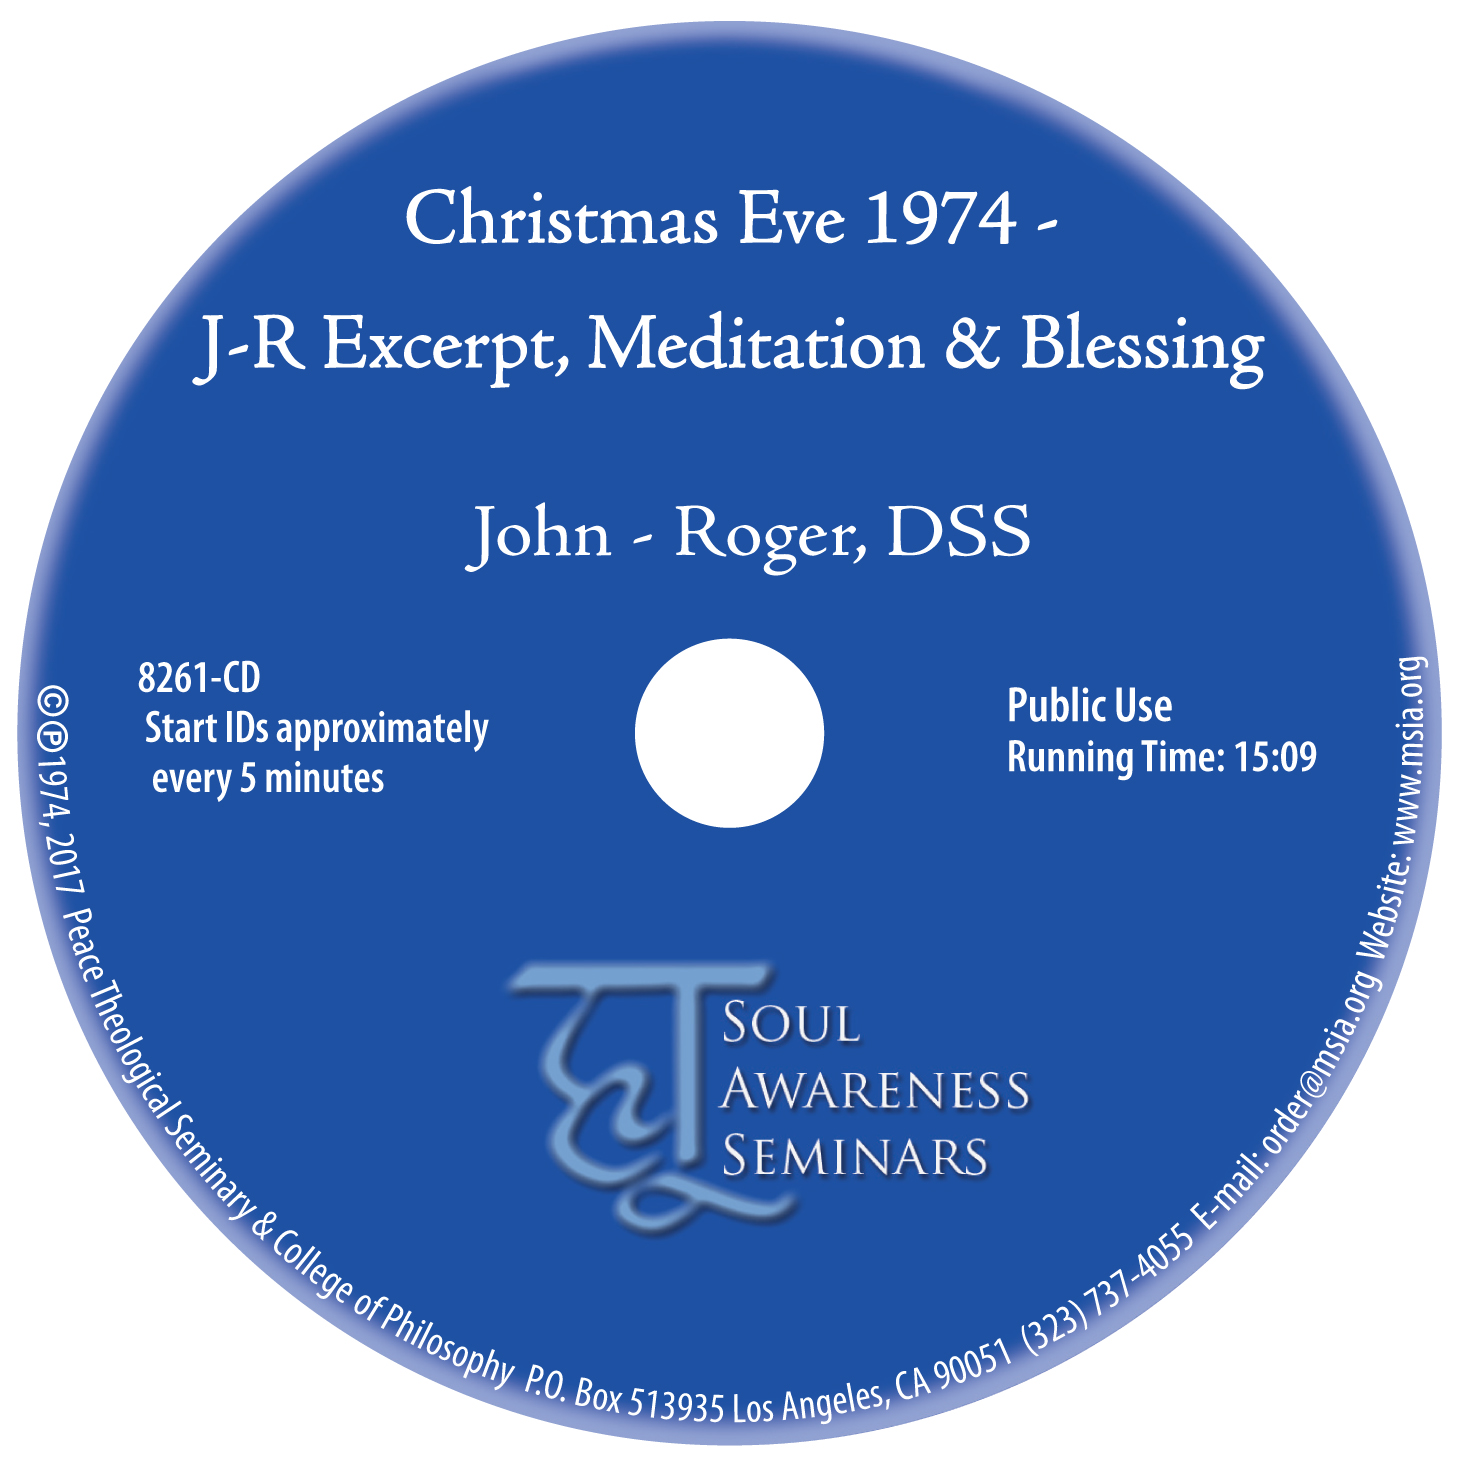 Christmas Eve 1974 - J-R Excerpt, Meditation & Blessing MP3